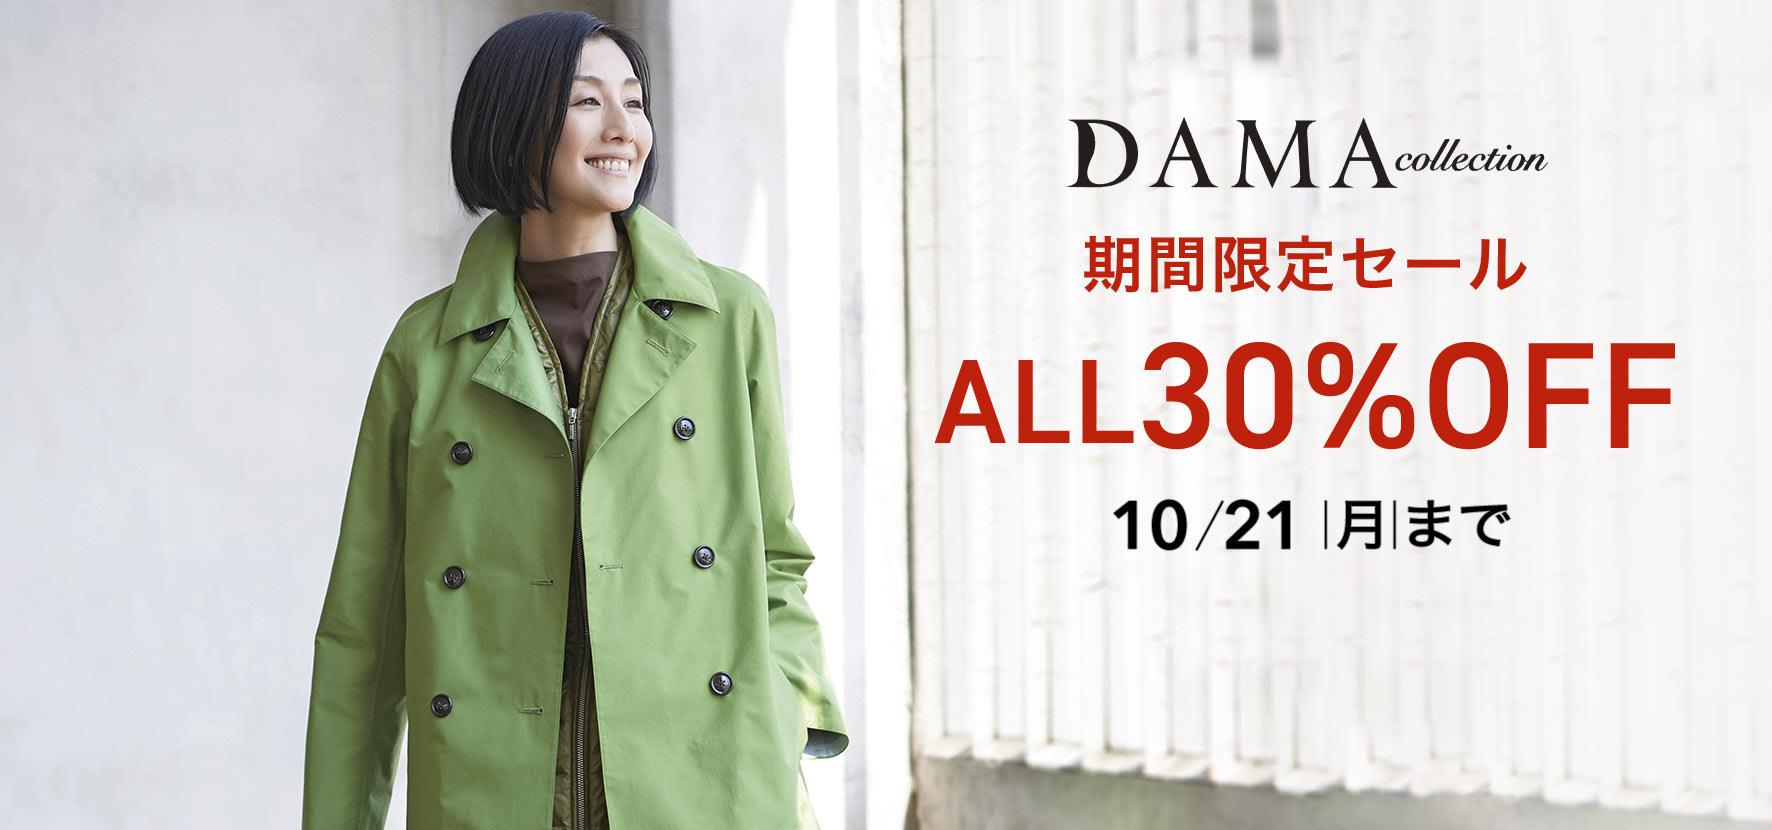 期間限定DAMA collectionセール